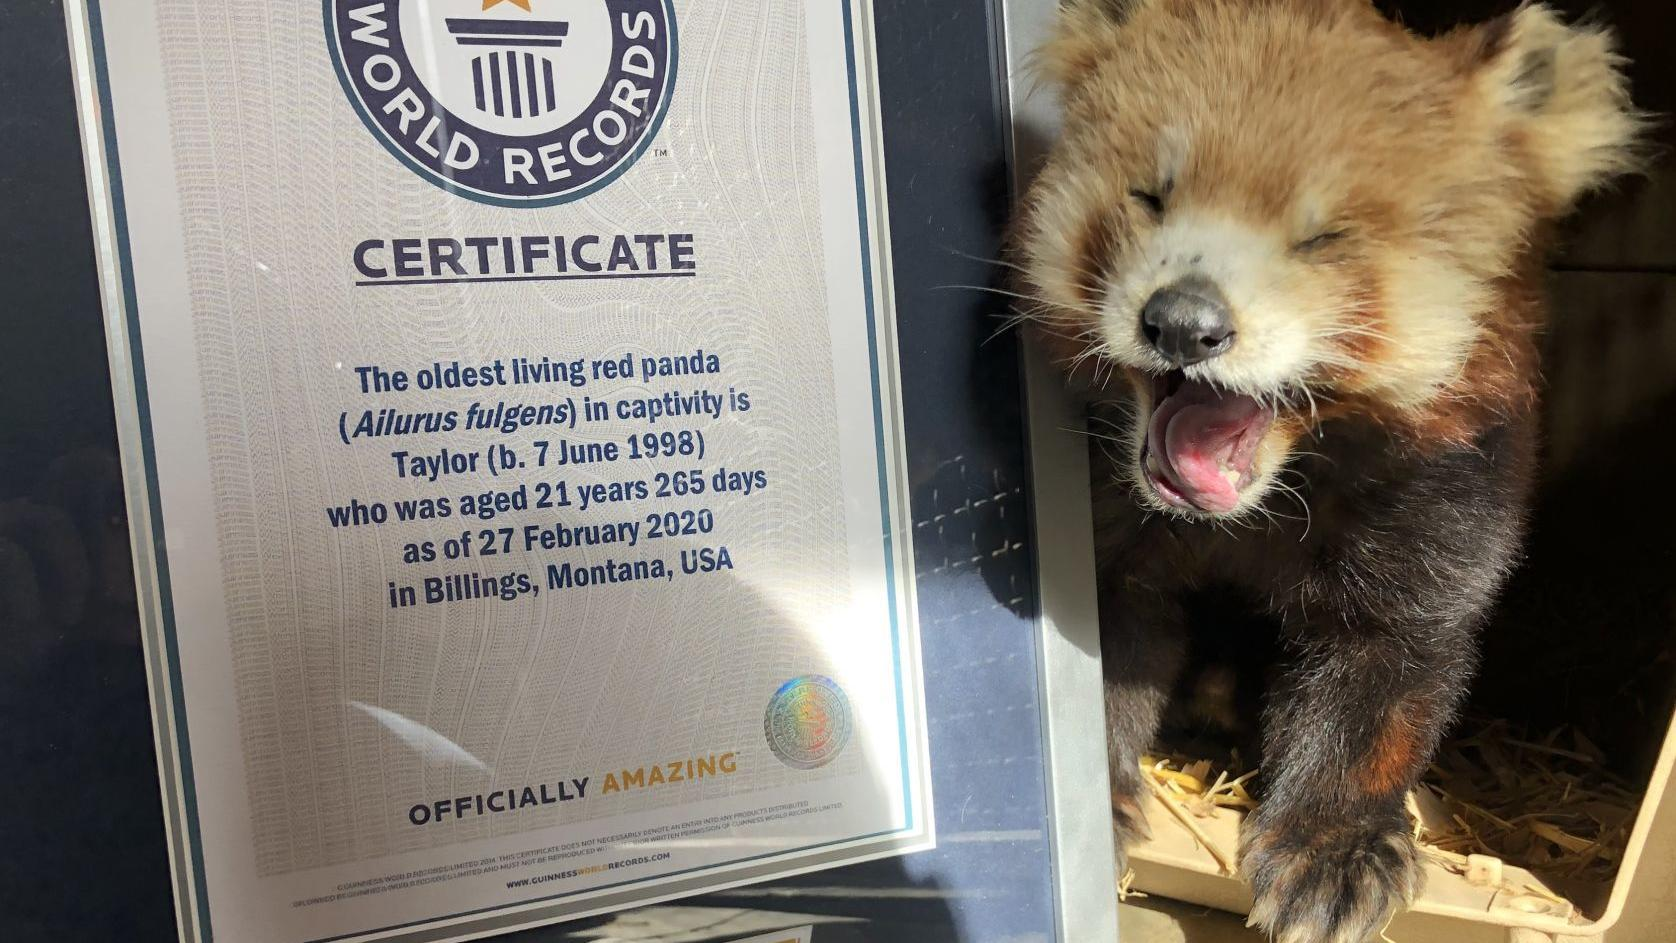 Zoomontana S Red Panda Breaks Record For Oldest Before Being Found Dead Wednesday Local News Billingsgazette Com